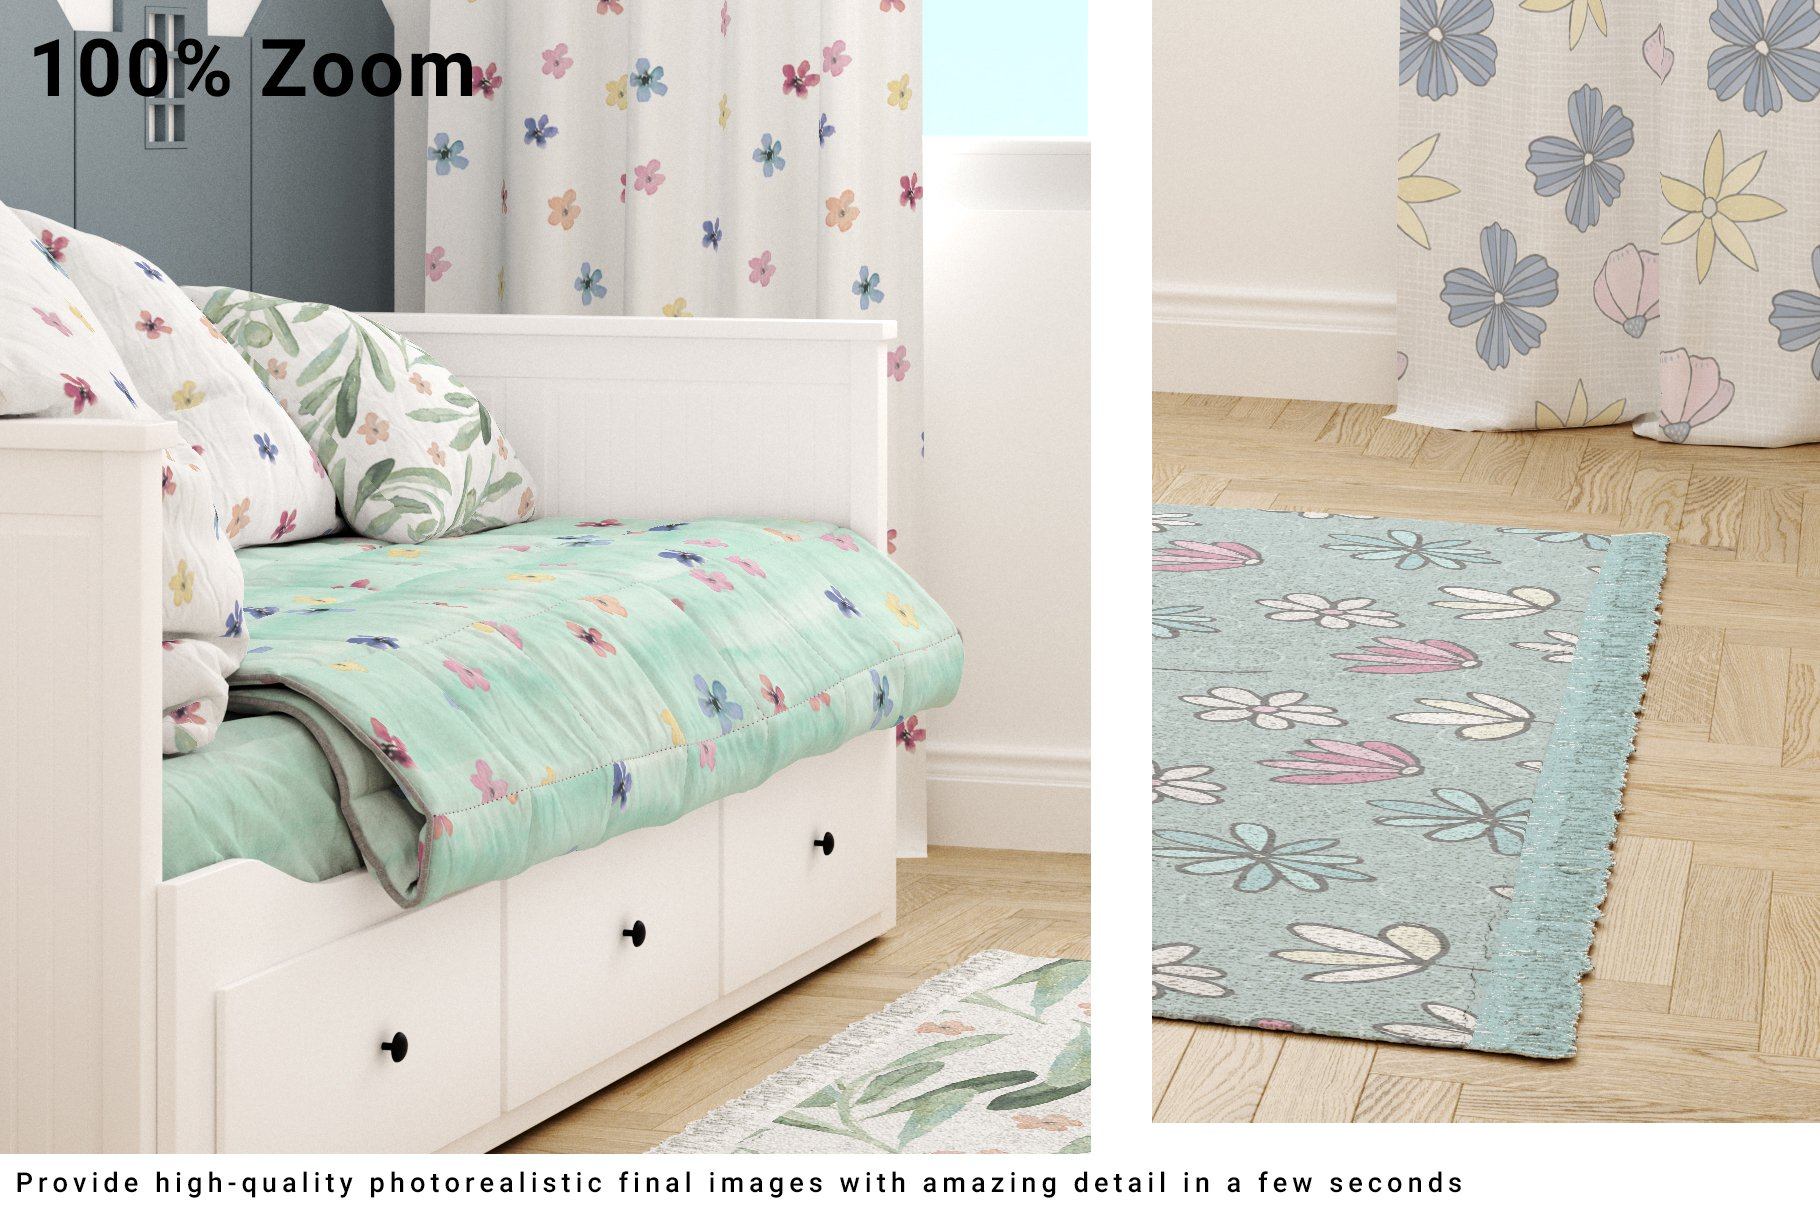 Toddlers Room Textile - Bedding, Curtains & Carpet Set example image 3